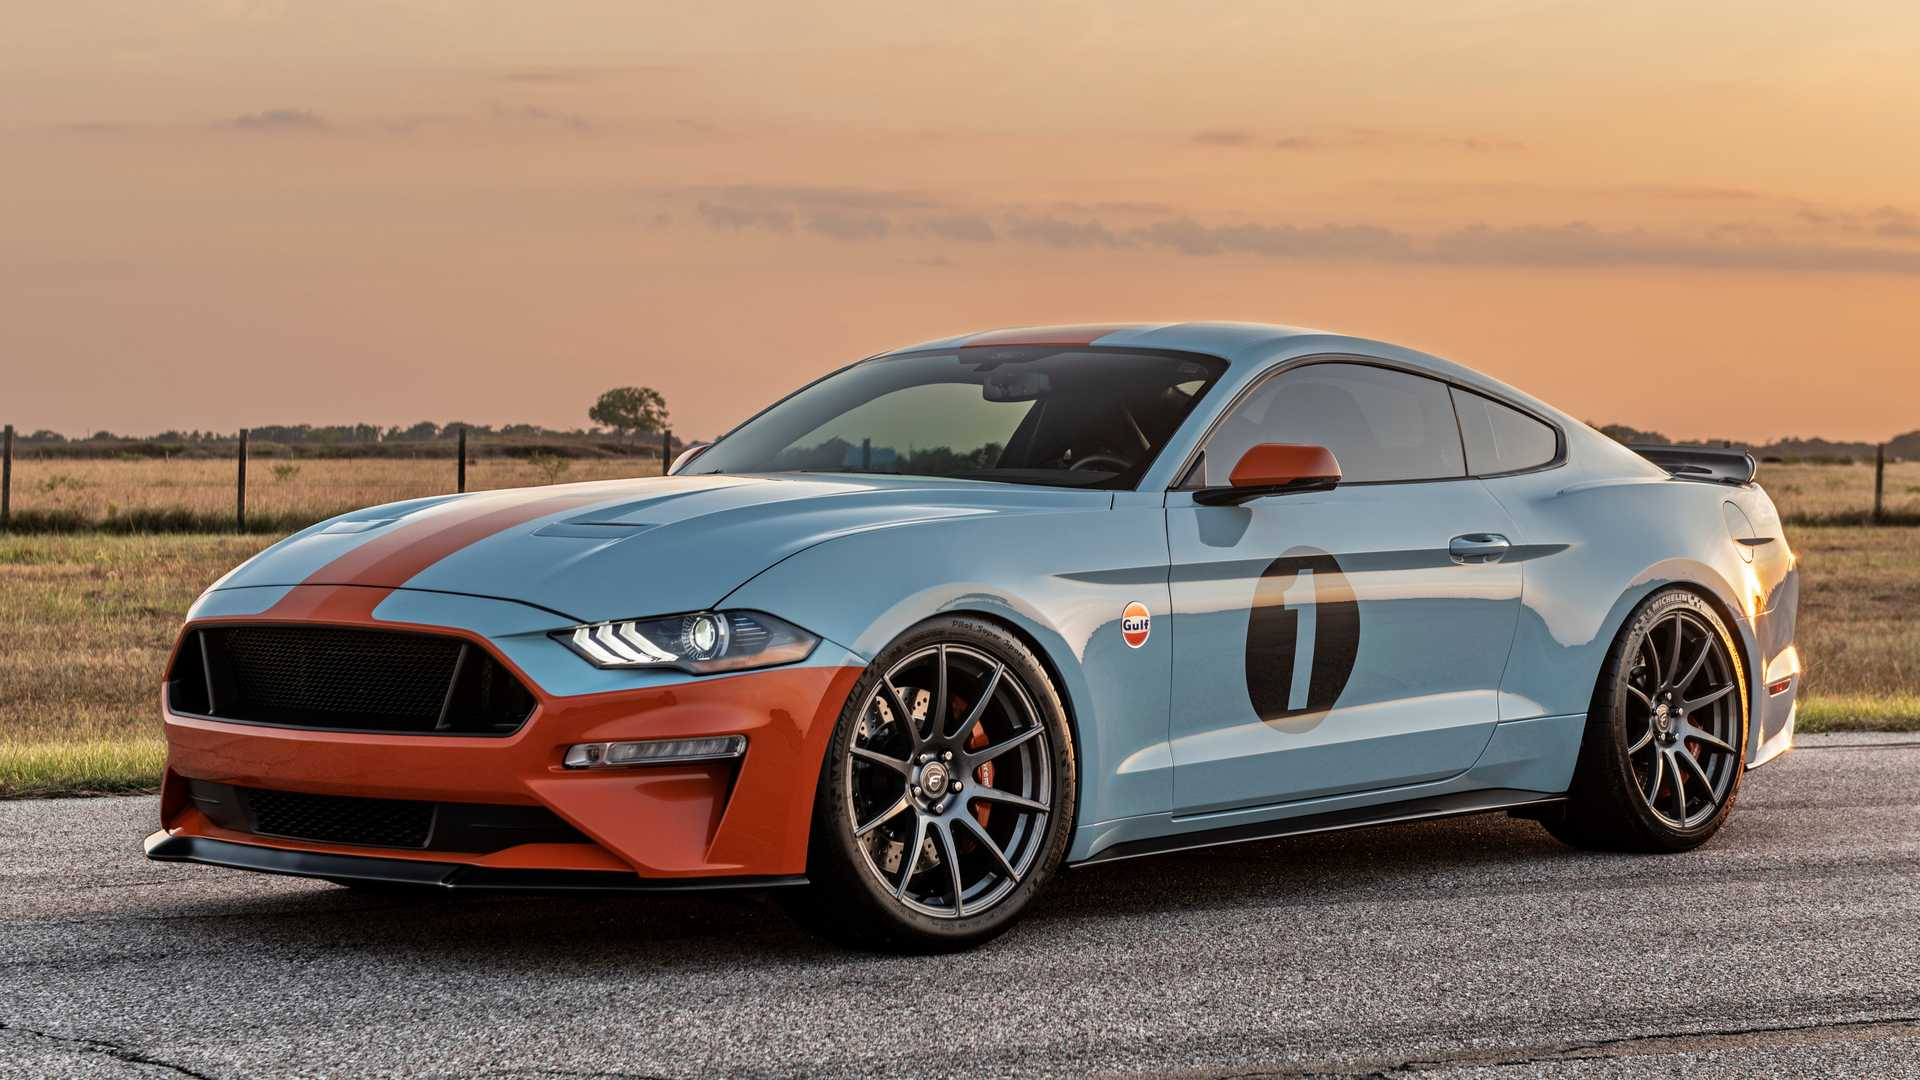 808HP Gulf Heritage Mustang Is For The Ultimate Ford Racing Fanatic